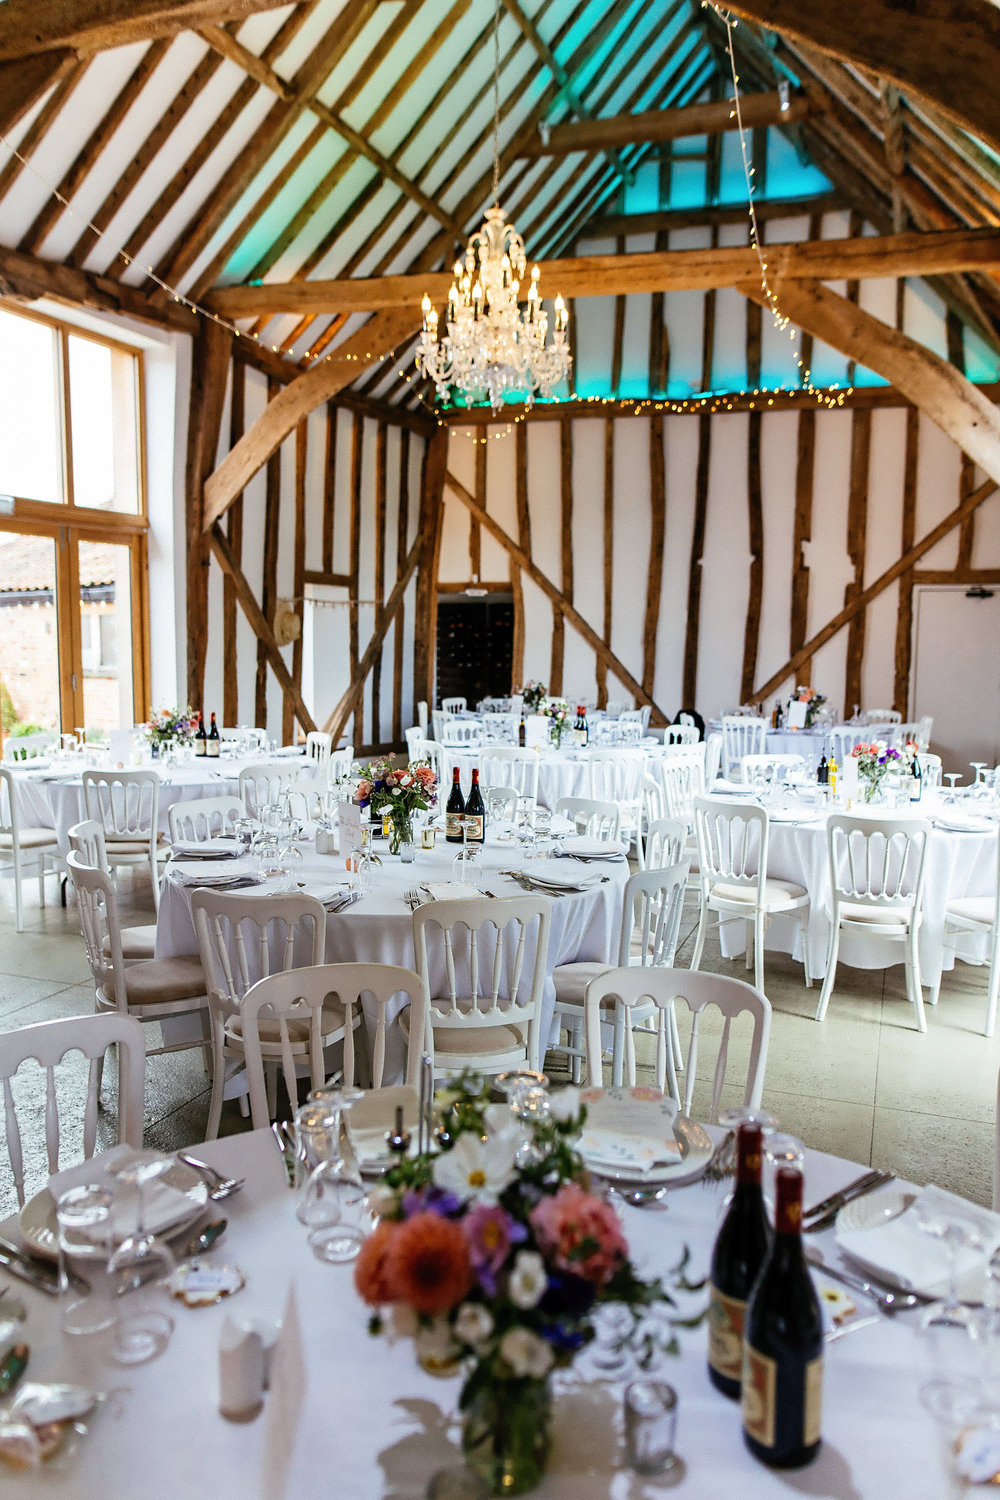 White Dove Barns Suffolk - Wedding Photographer 0112-1.jpg